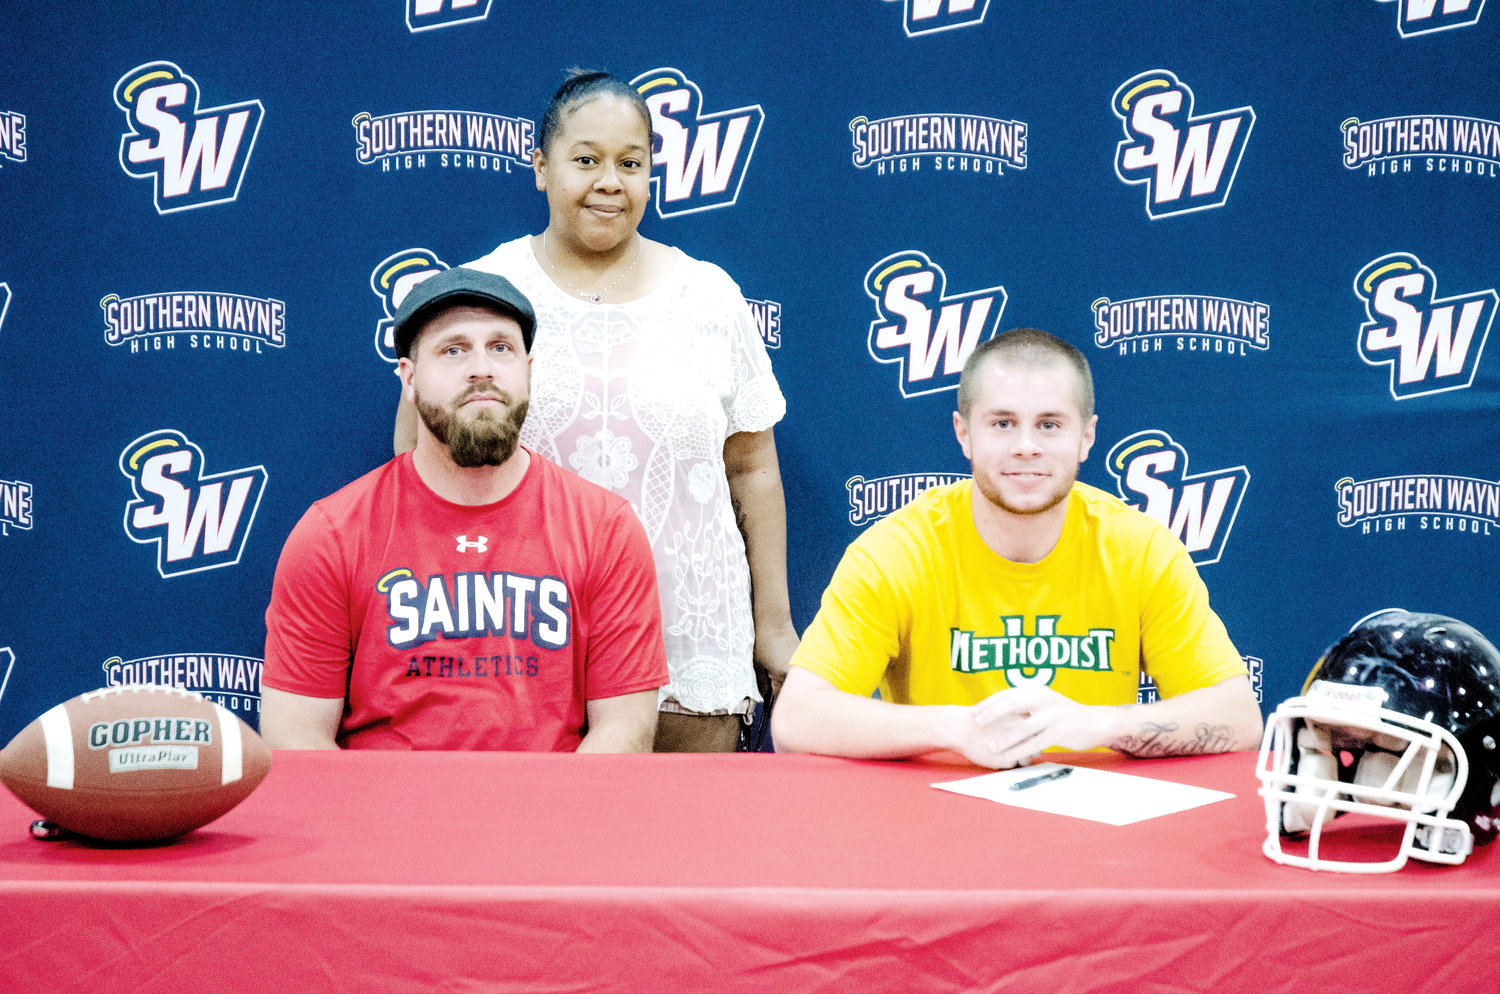 Dylan Denning gets ready to sign his letter of intent to play for Methodist University, with his dad, Dwayne, and stepmom, Laqueila Denning.